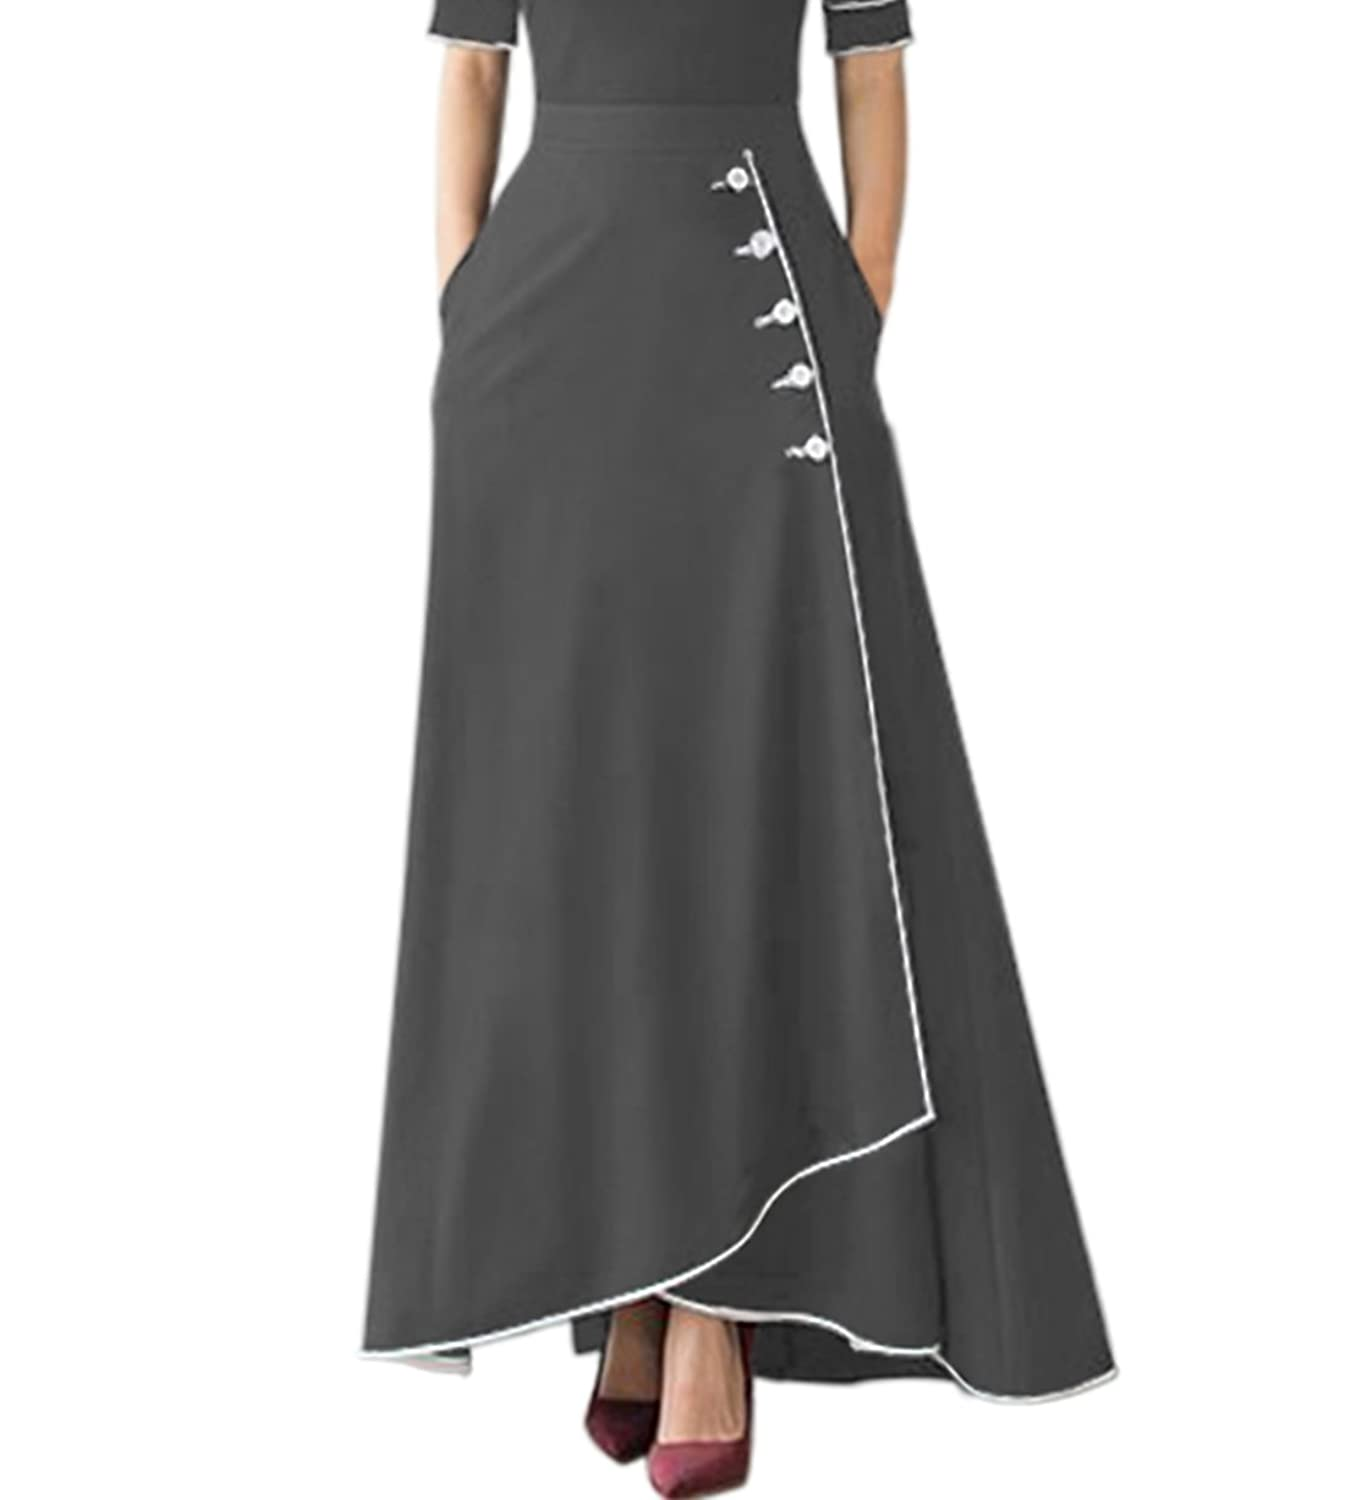 FIYOTE Women High Waisted Button Front Slit A-Line Flared Long Maxi Skirt With Pocket S-XXL